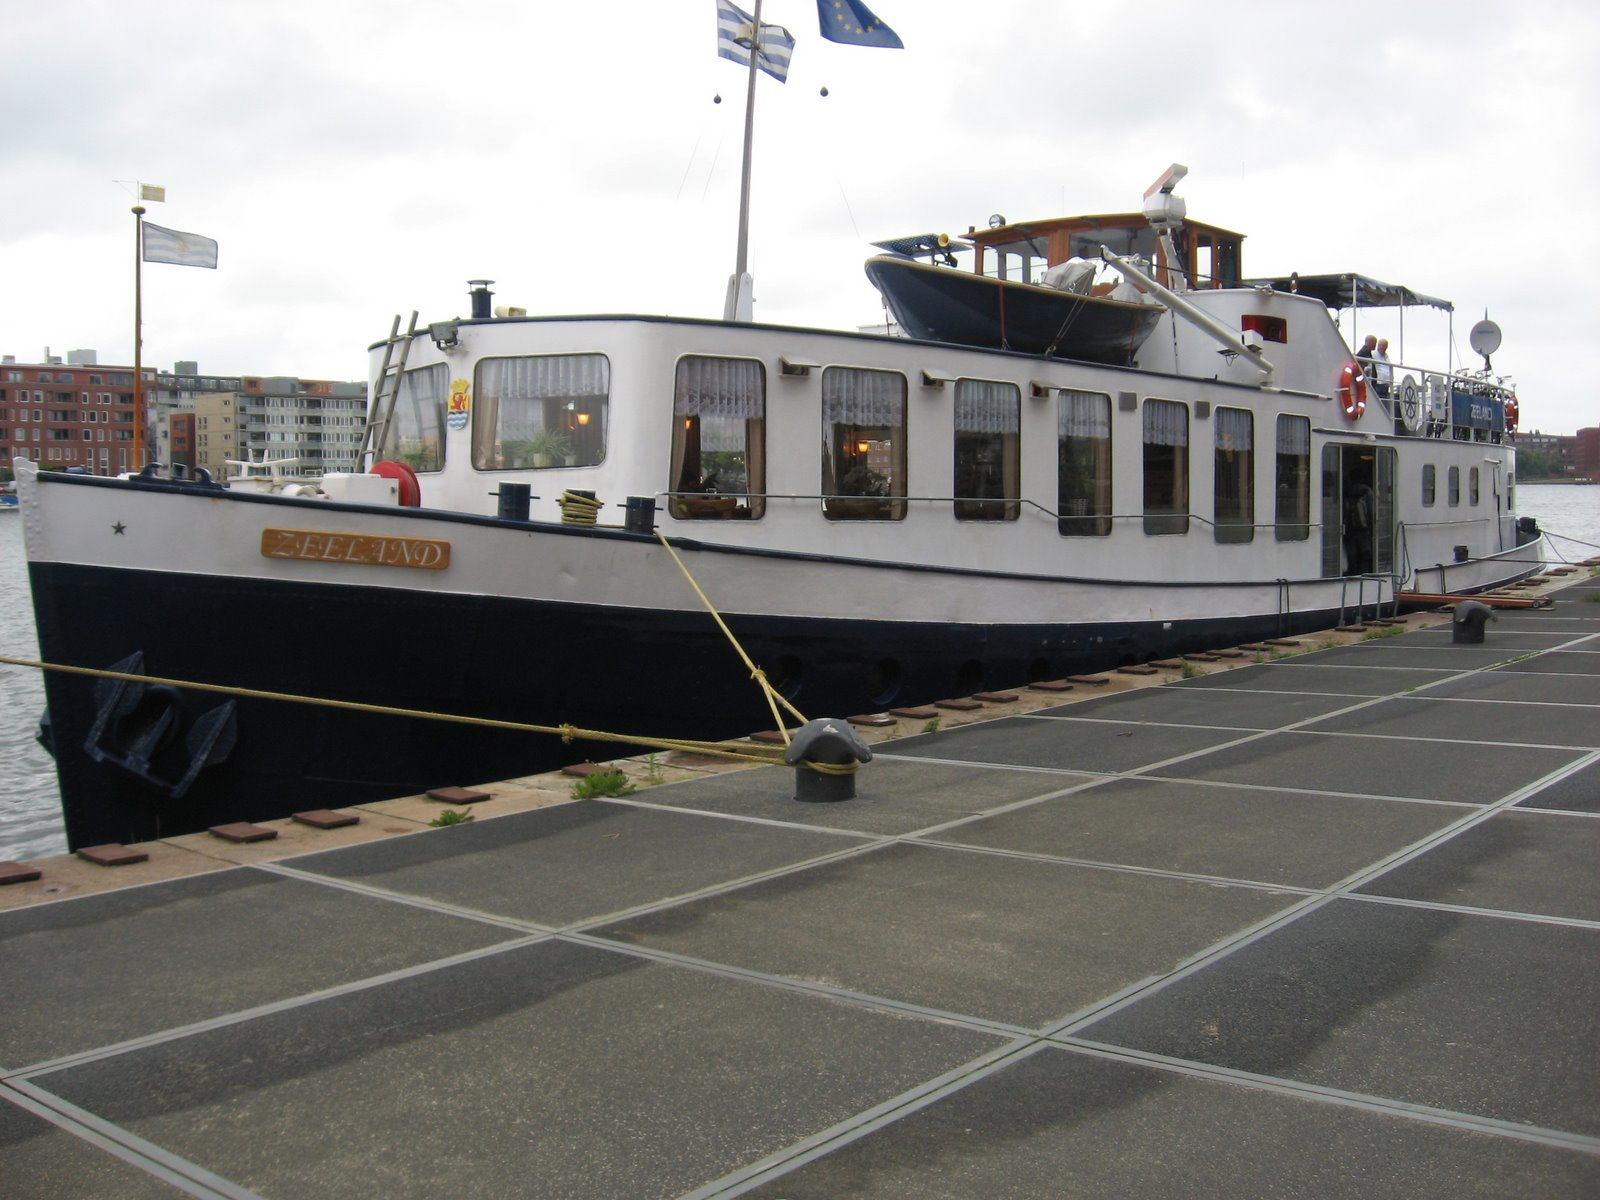 The Zeeland docked in Amsterdam